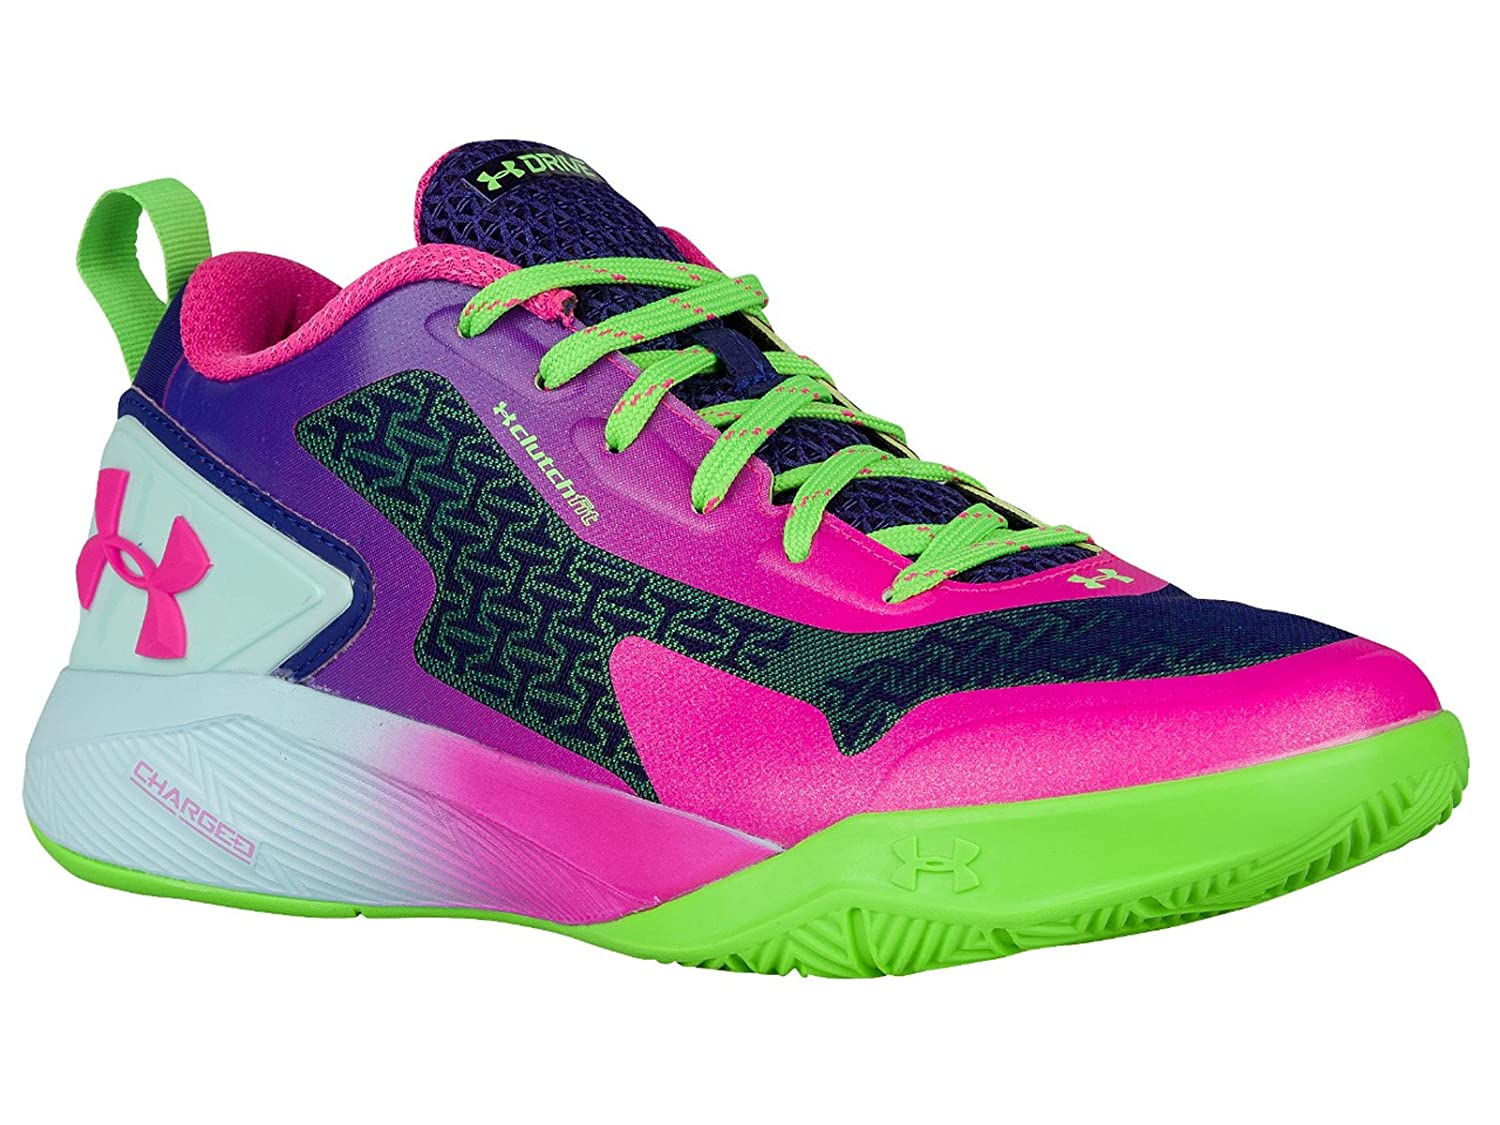 8ccd011862f Under Armour Men s ClutchFit Drive 2 Low Rebel Pink Purple Panic Synthetic Basketball  Shoes 7.5 M US  Amazon.ca  Shoes   Handbags